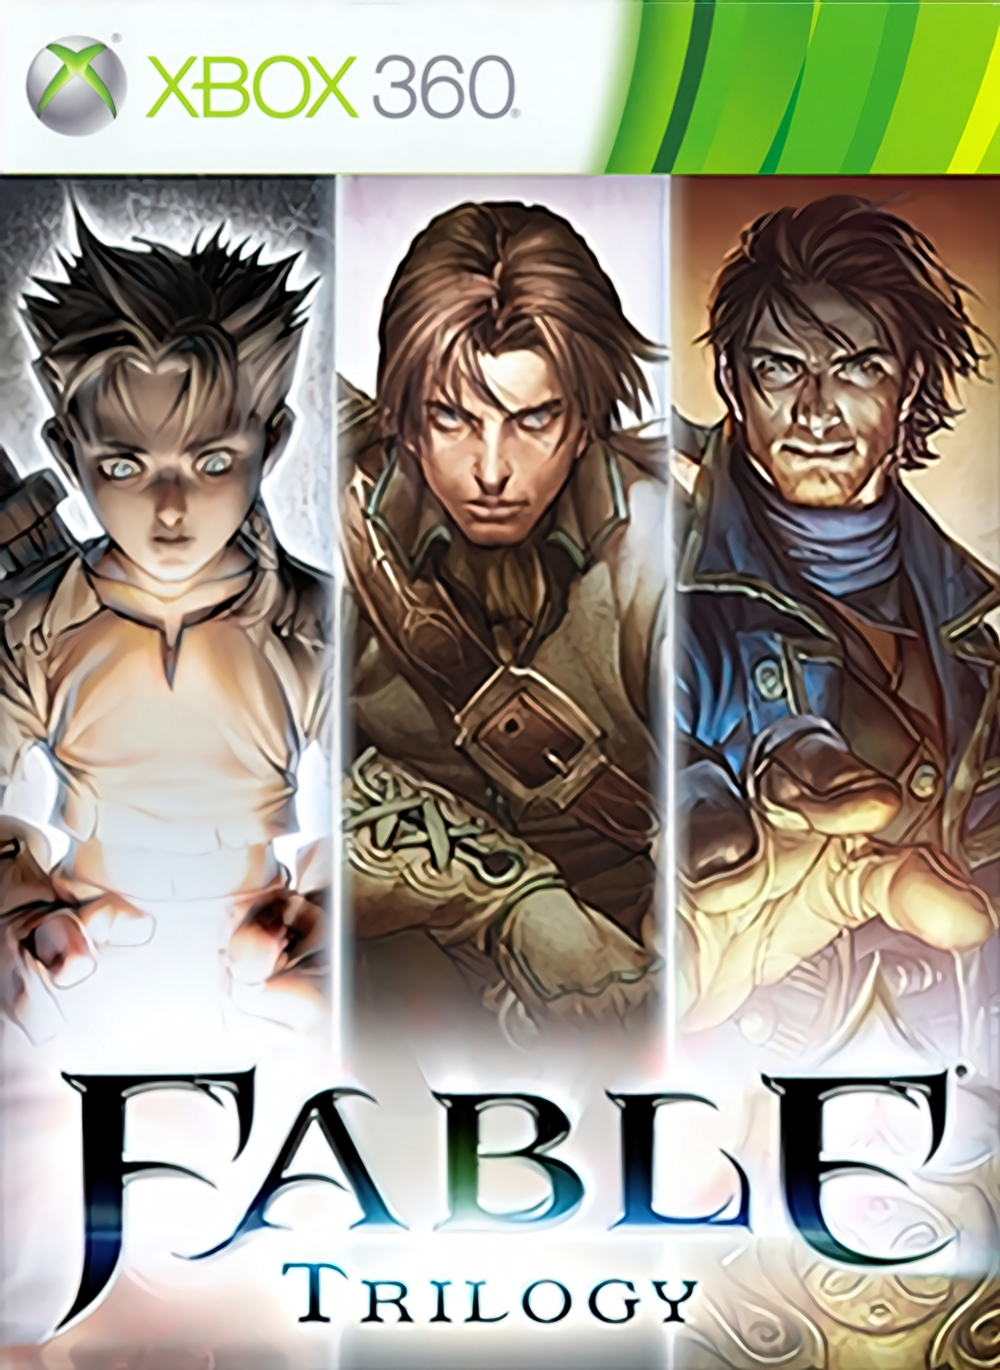 File:Fable trilogy.jpg